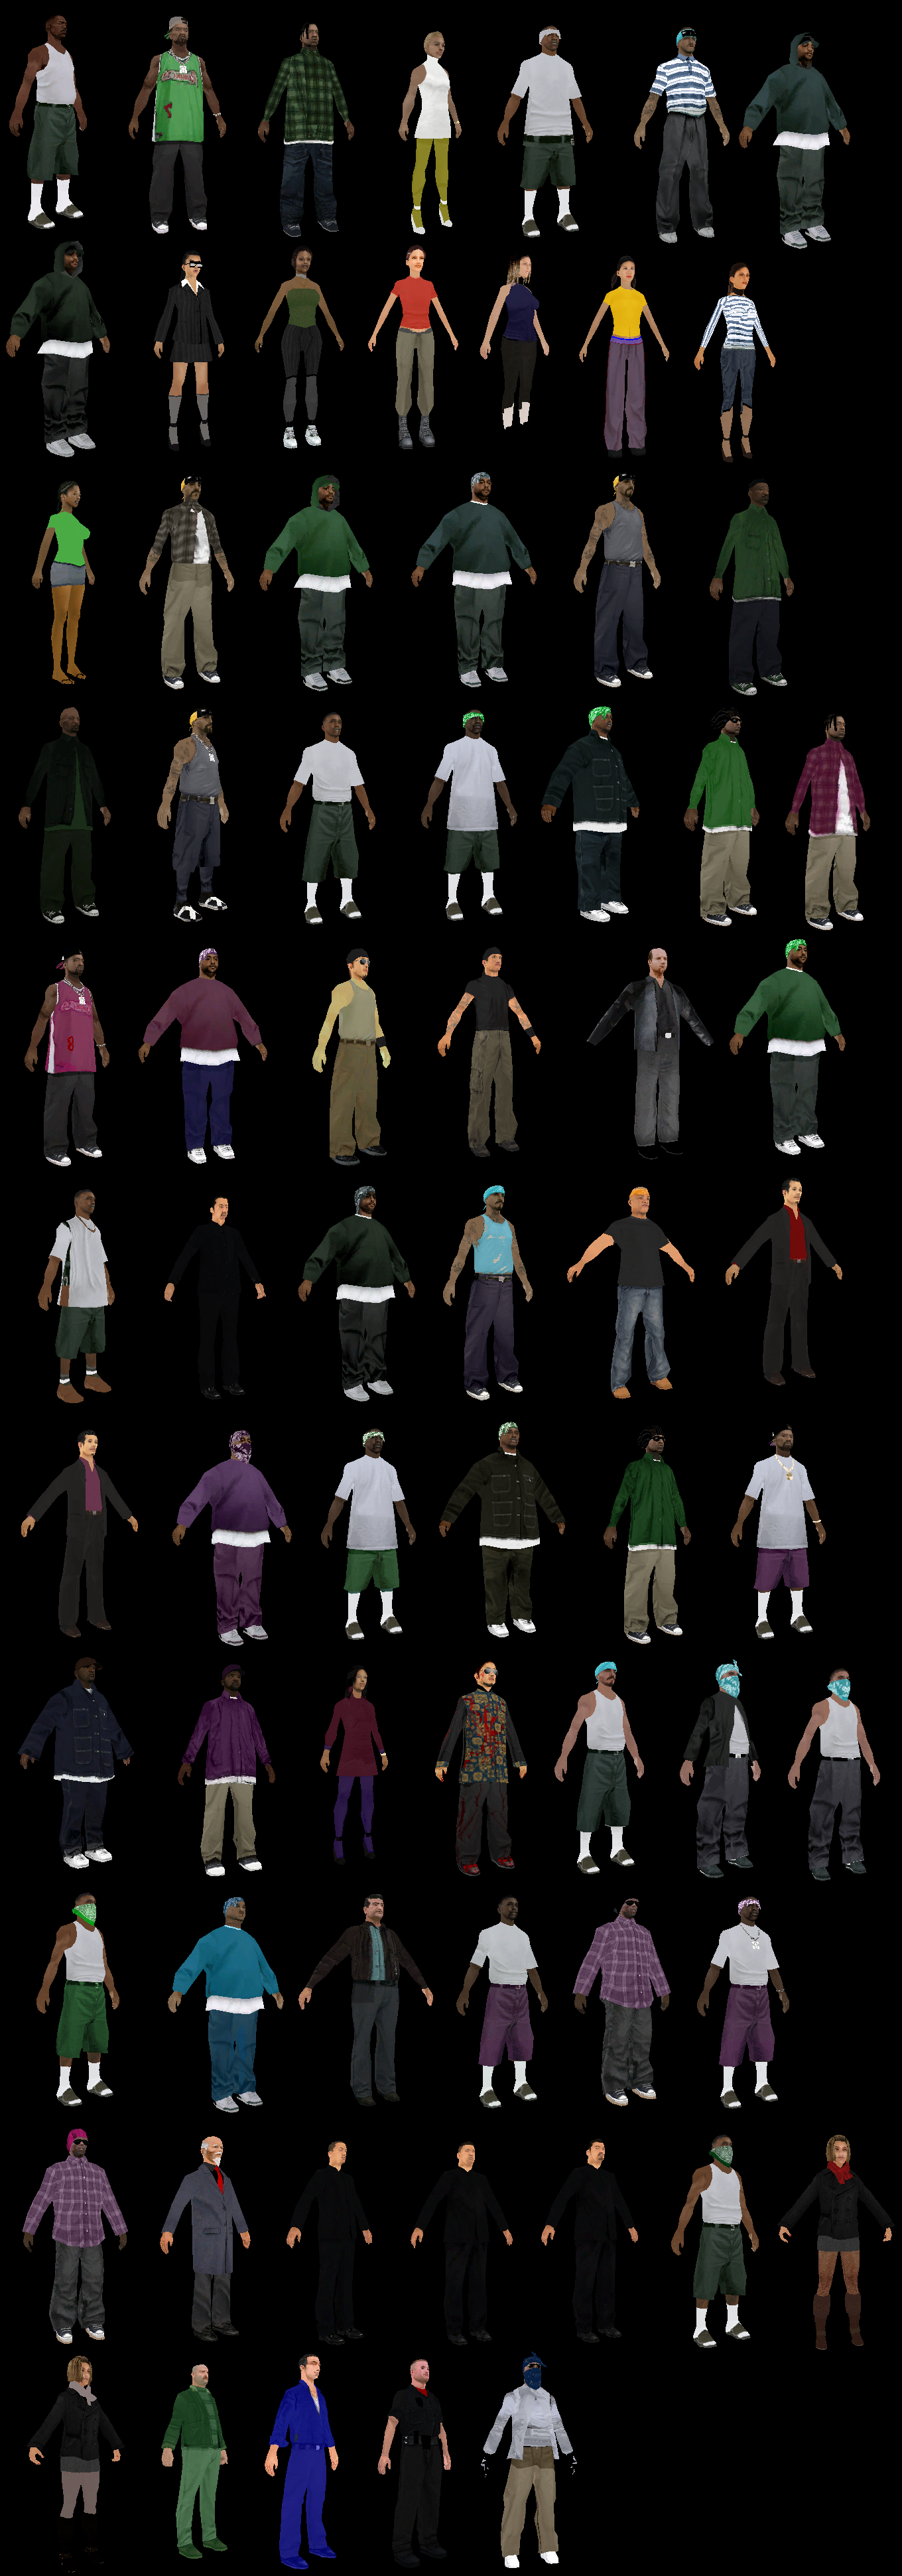 All_Skins_By_Jeansowaty.PNG